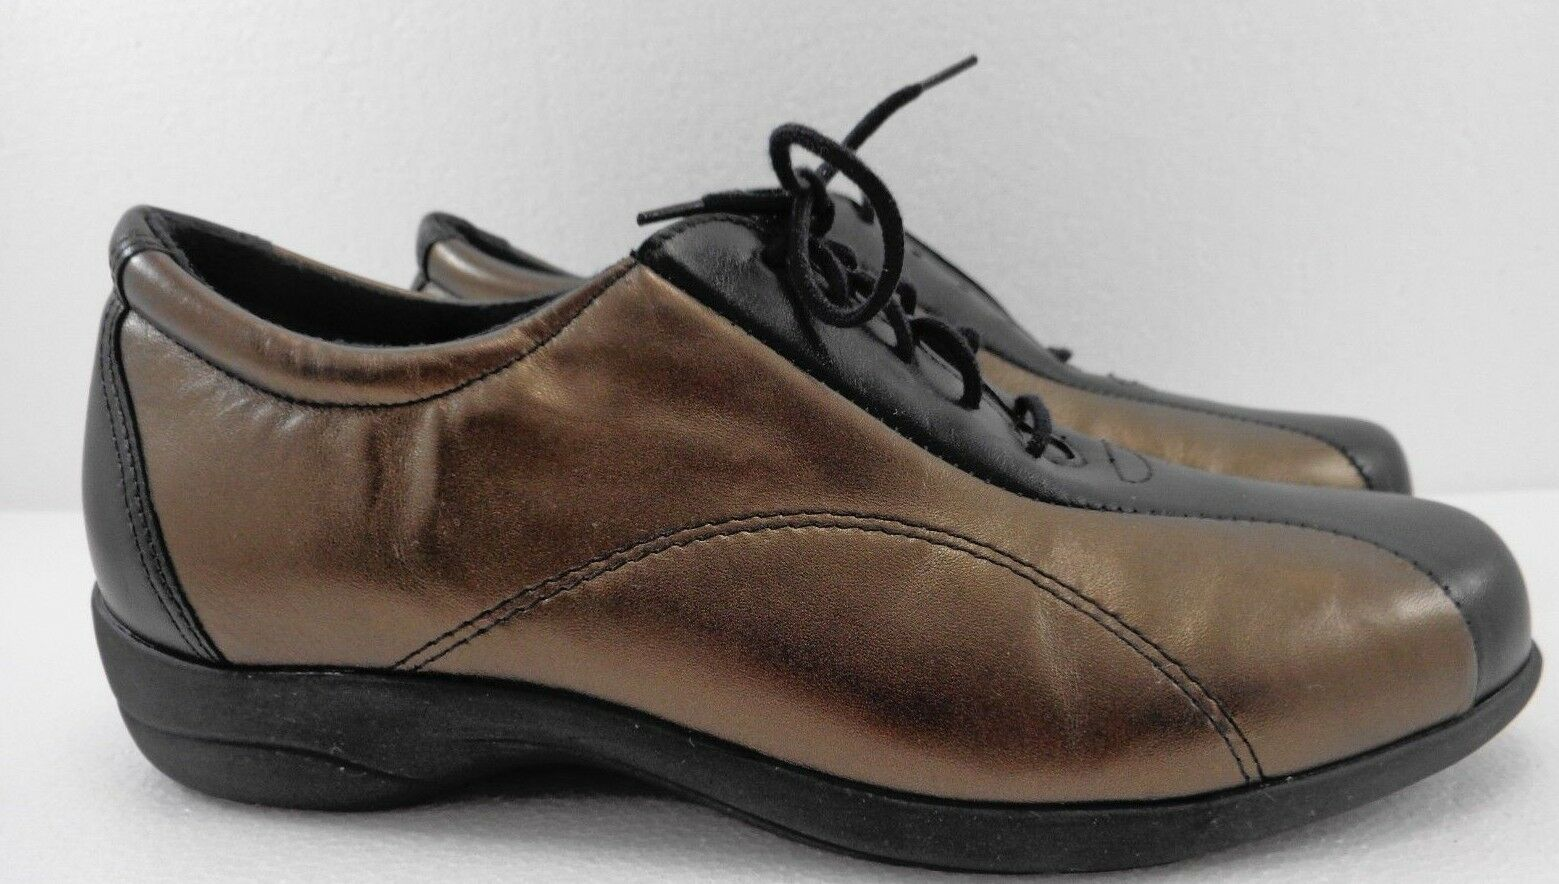 Munro  Womens 6.5 W Sport Bronze & Black Leather Oxfords shoes Made in USA